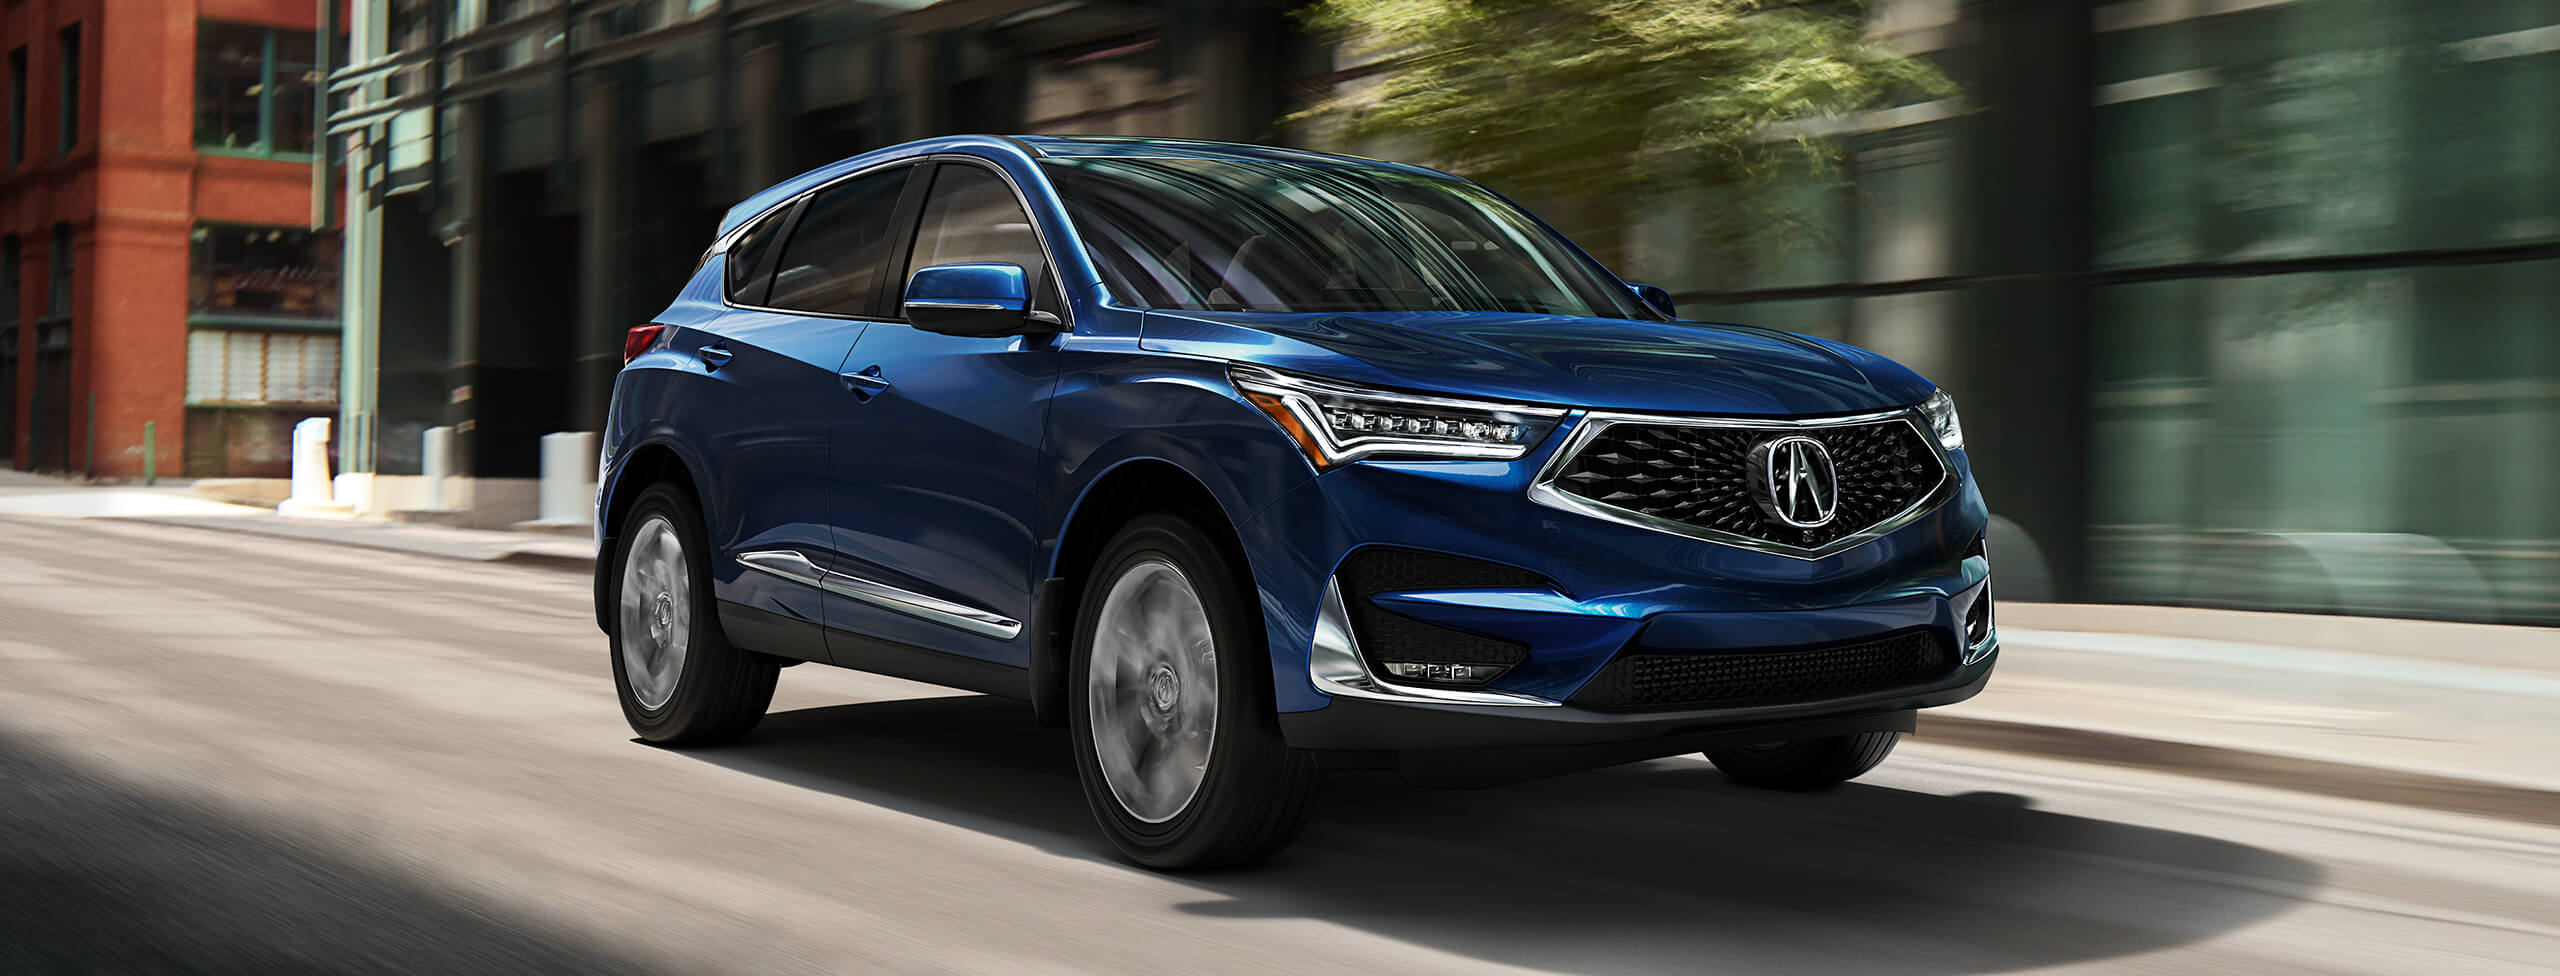 2019 acura rdx manual pdf